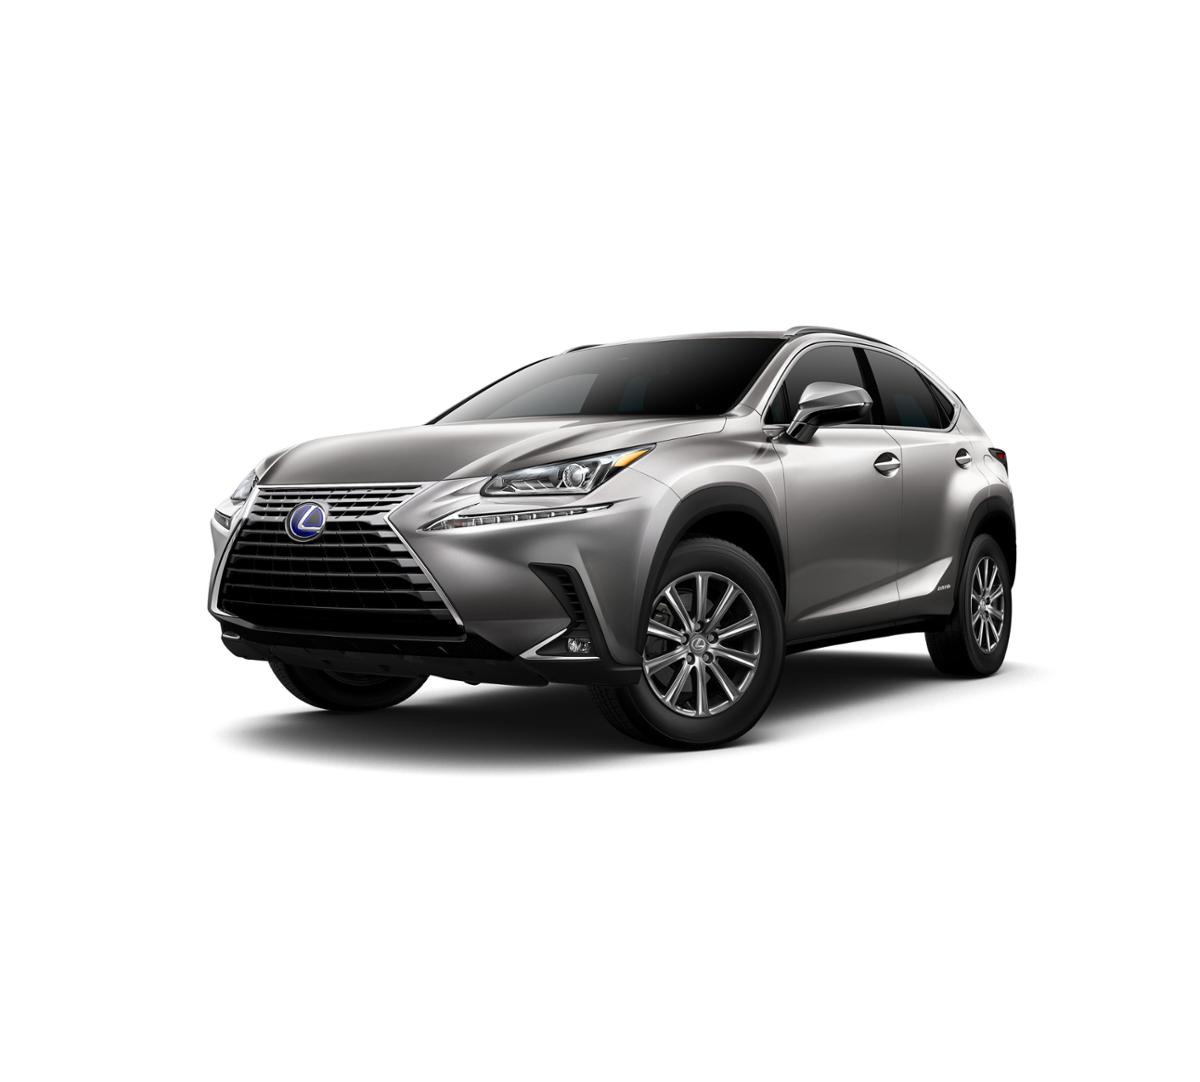 2020 Lexus NX Vehicle Photo in Las Vegas, NV 89146